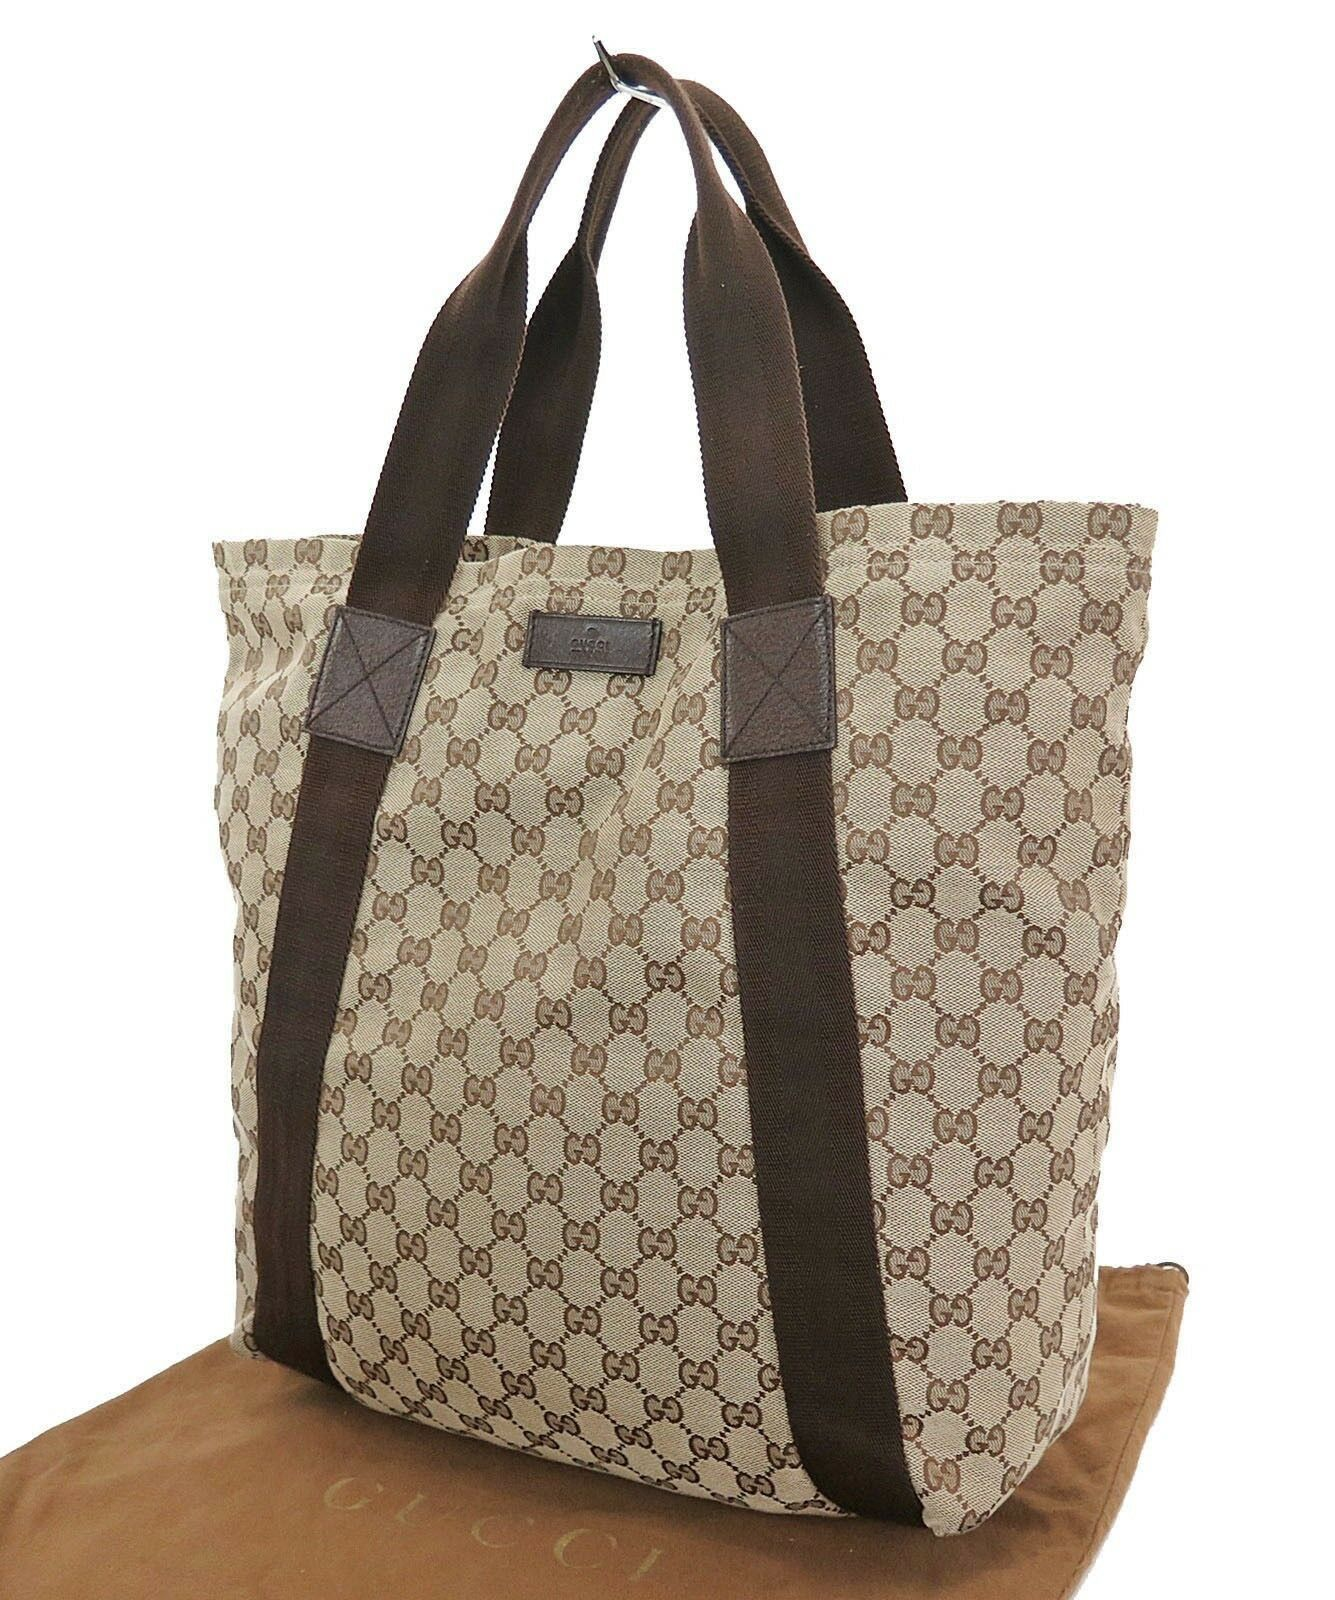 c32fb6788 Authentic GUCCI Brown GG Canvas and Leather Tote Bag Purse #30235 - $359.00